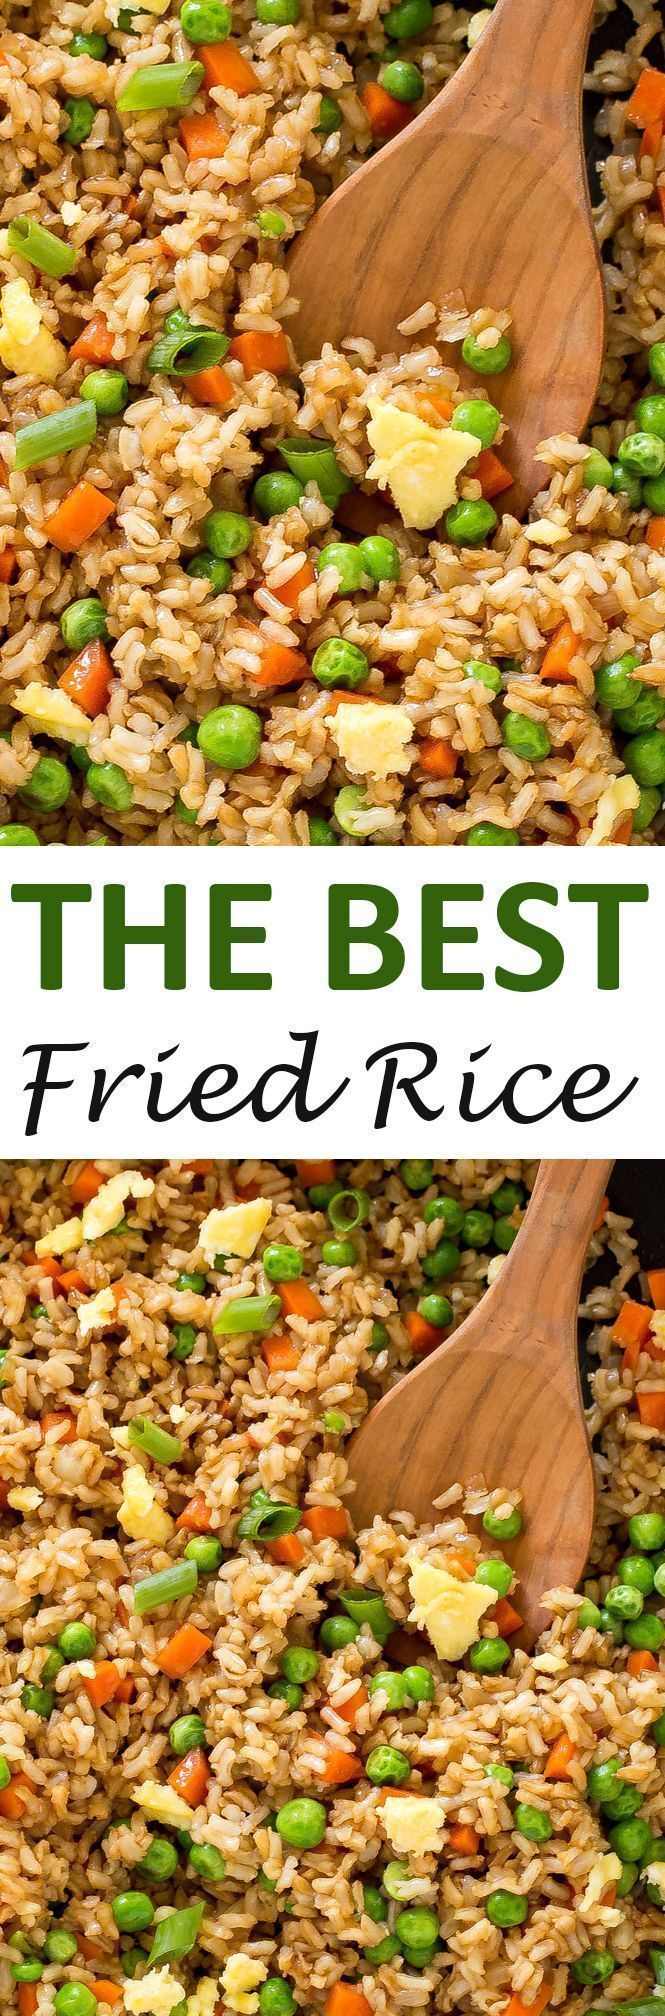 The BEST Fried Rice. This fried rice is loaded with veggies and only takes 20 minutes to make!